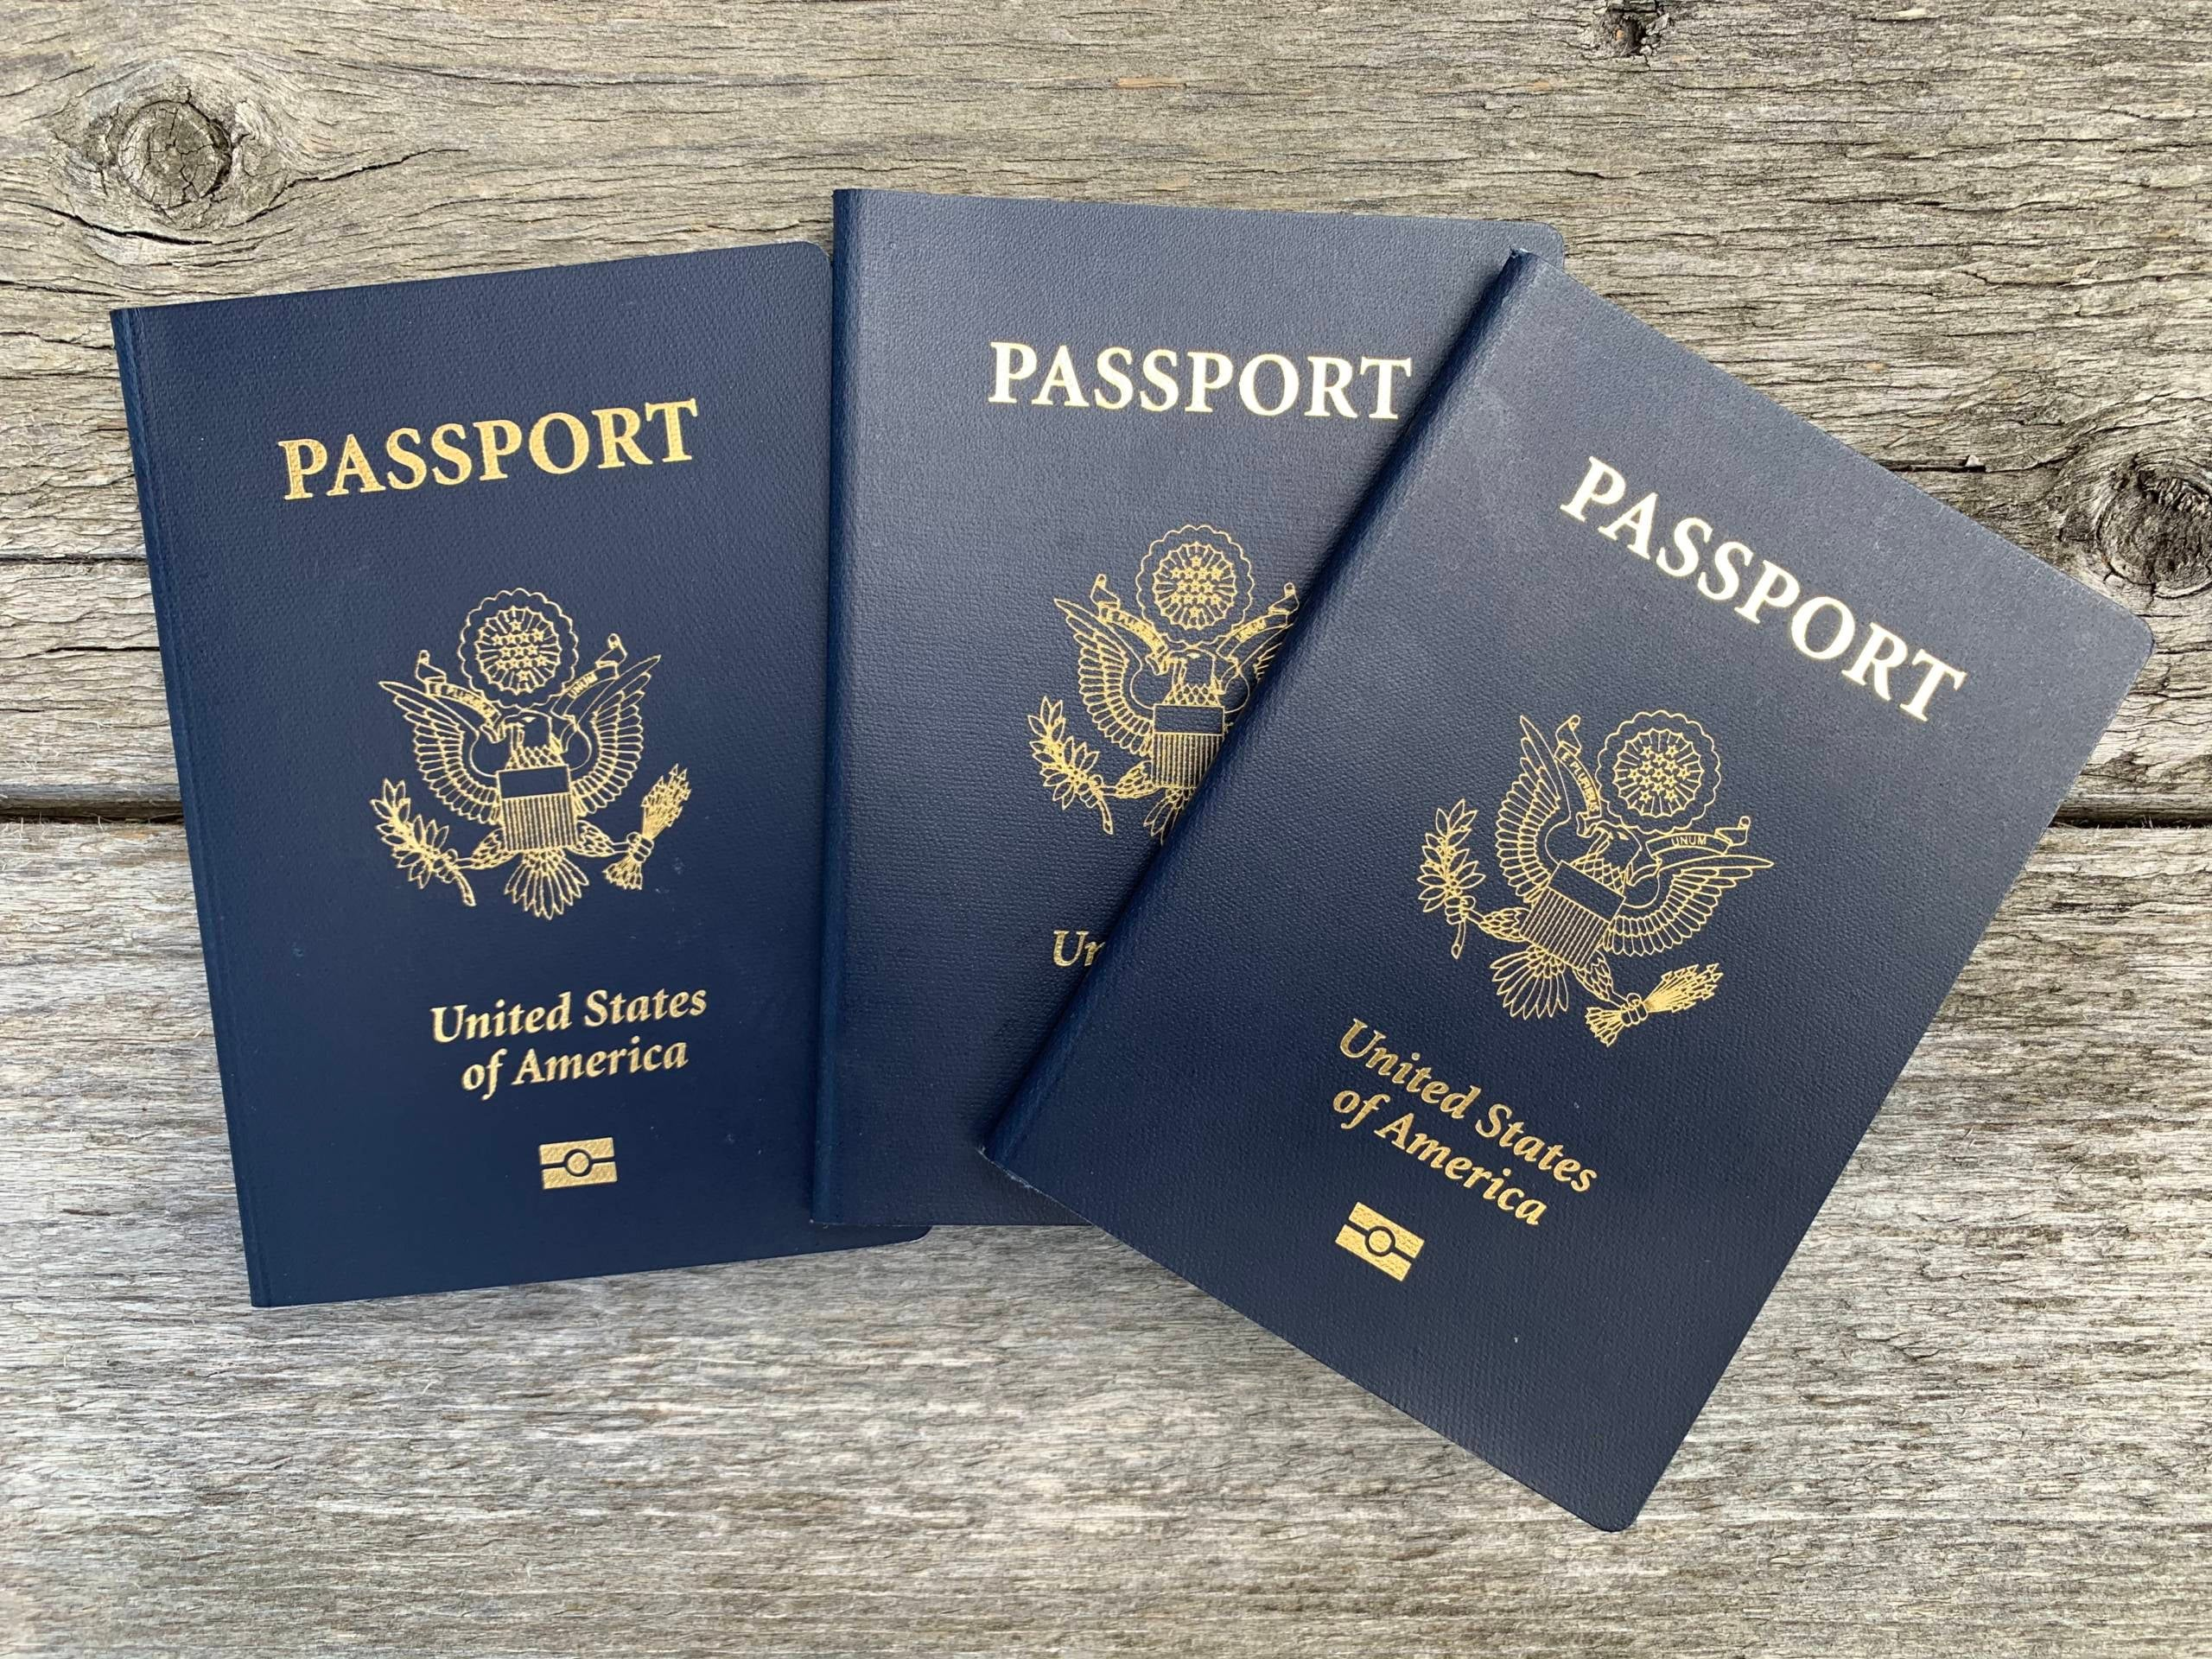 Passport card vs. passport book: What documents do I need to cruise? - The Points Guy